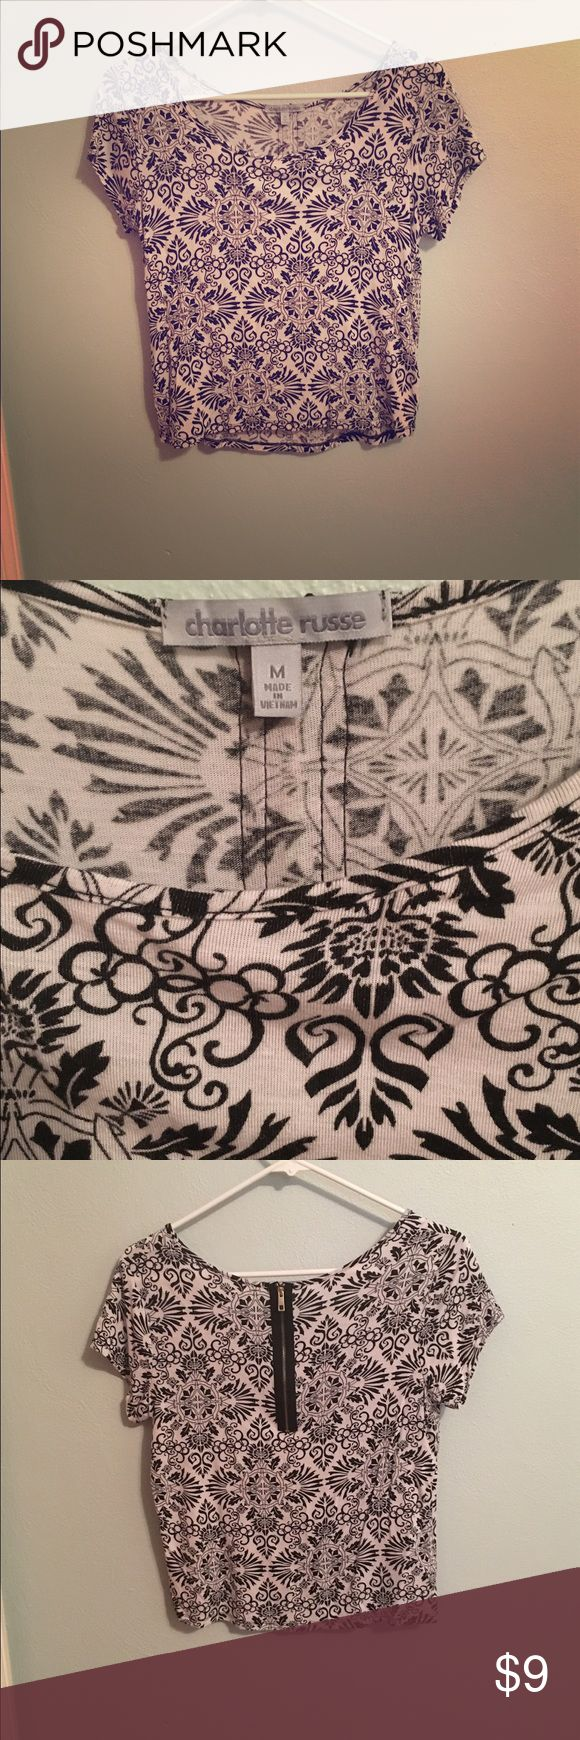 Black and White Aztec Crop Top Zip up back crop top from Charlotte Russe. Only worn once! Charlotte Russe Tops Crop Tops